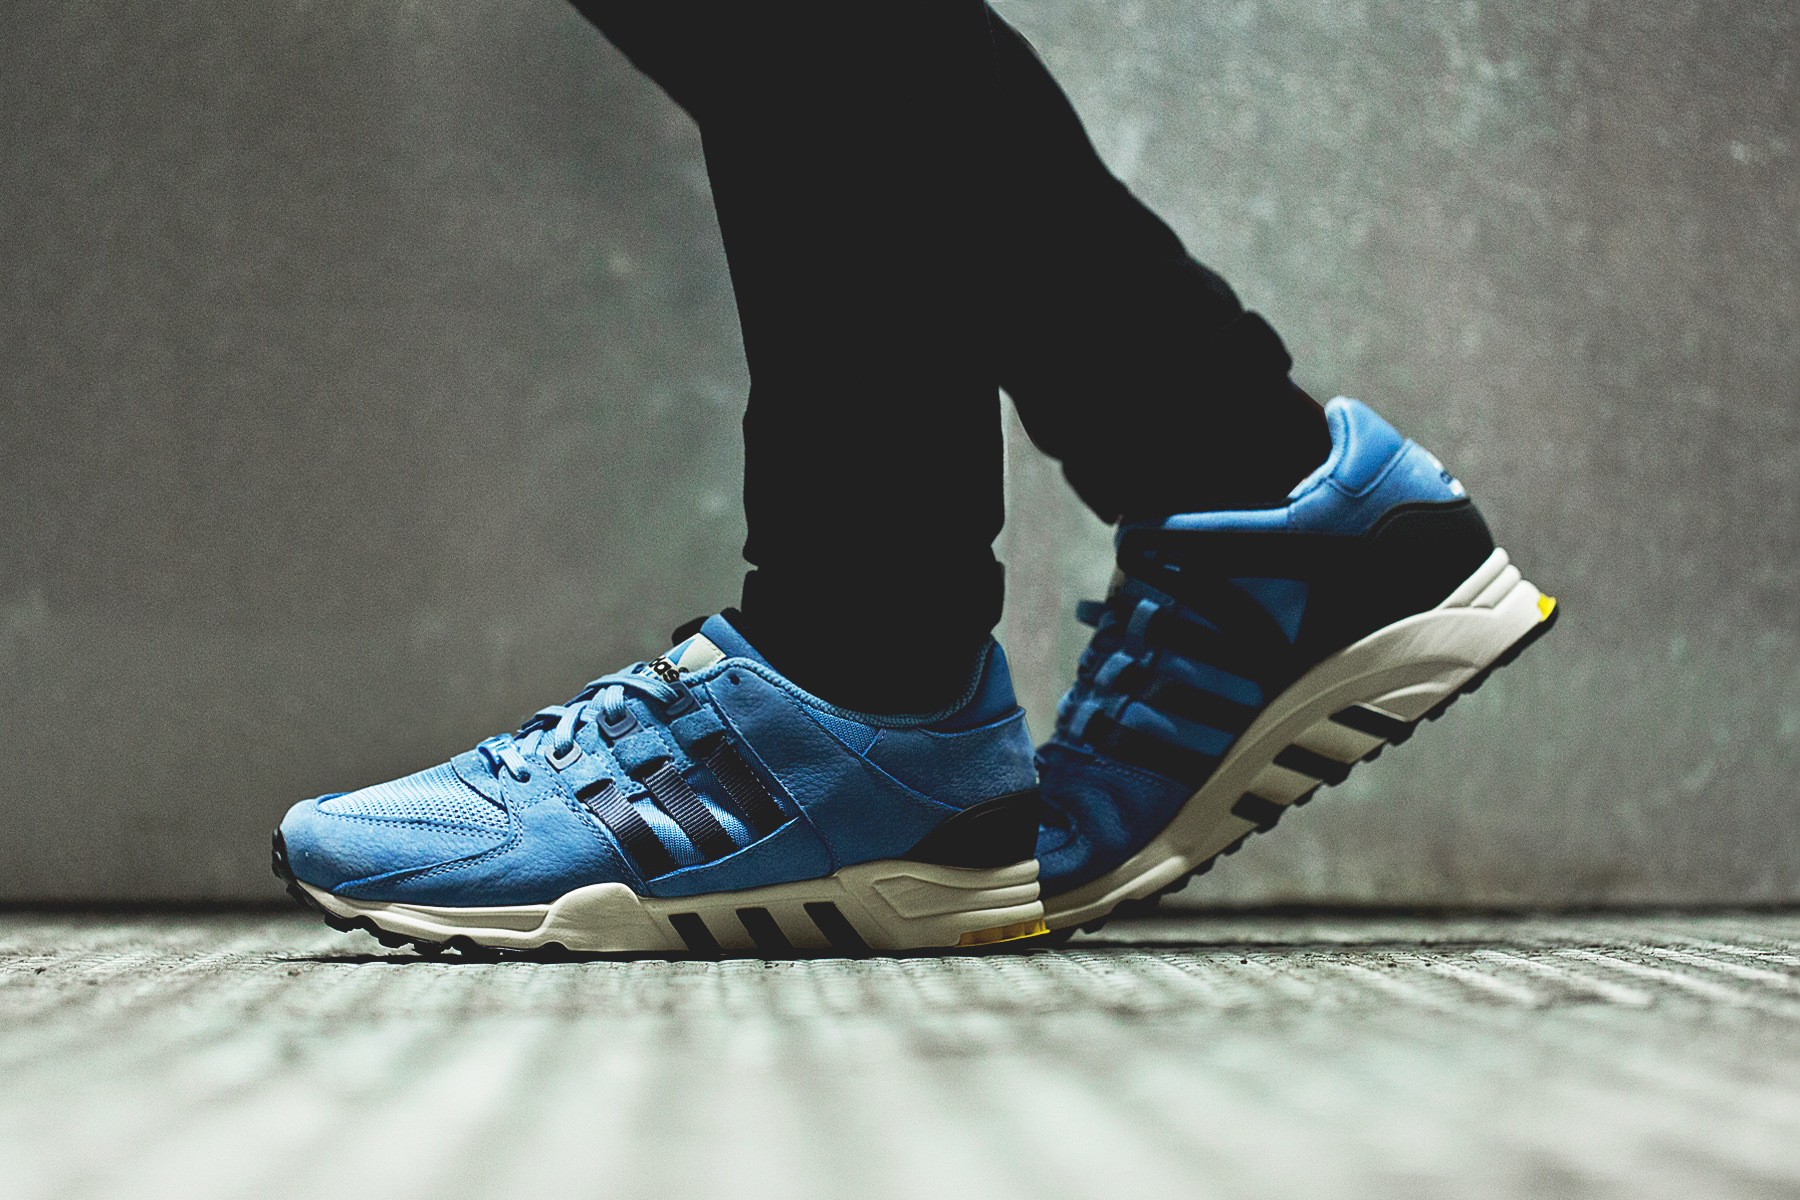 adidas equipment running support 93 hypebeast